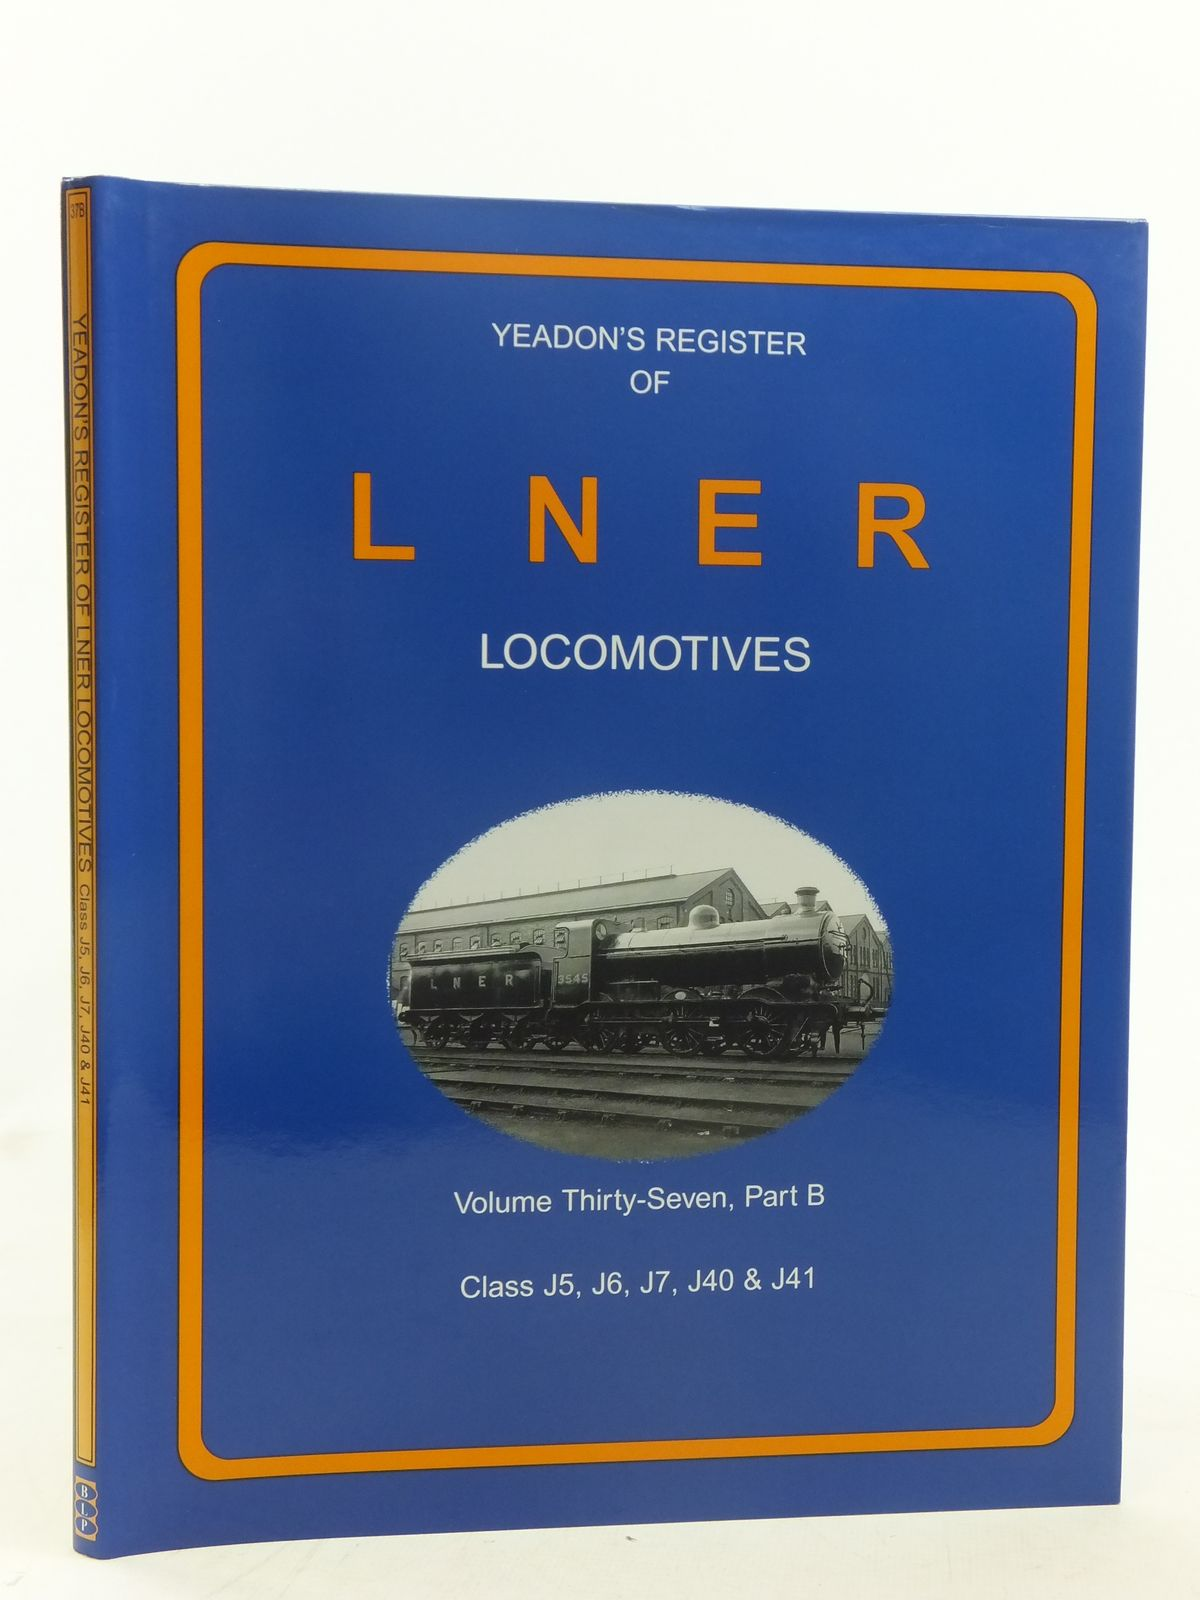 Photo of YEADON'S REGISTER OF LNER LOCOMOTIVES VOLUME THIRTY-SEVEN PART B published by Challenger Publications, Book Law Publications (STOCK CODE: 1606896)  for sale by Stella & Rose's Books